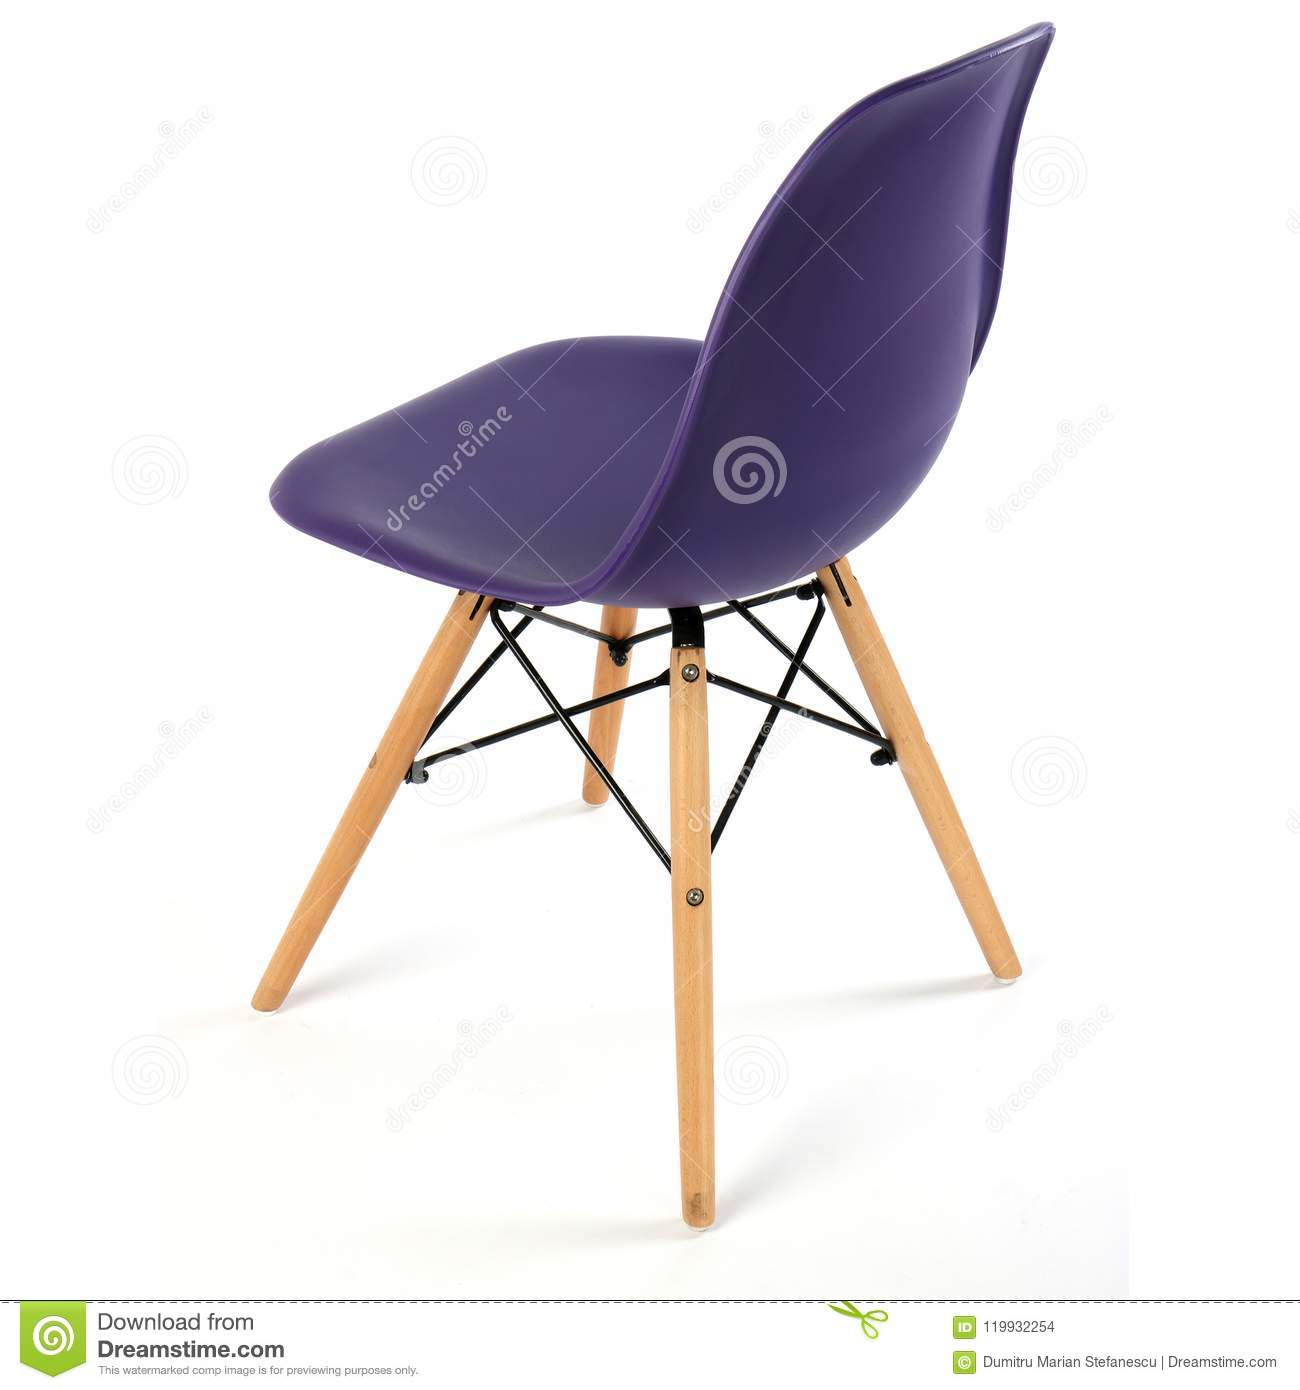 Dark violet color chair white wooden legs. Plastic chair cut out. Series of  furniture.